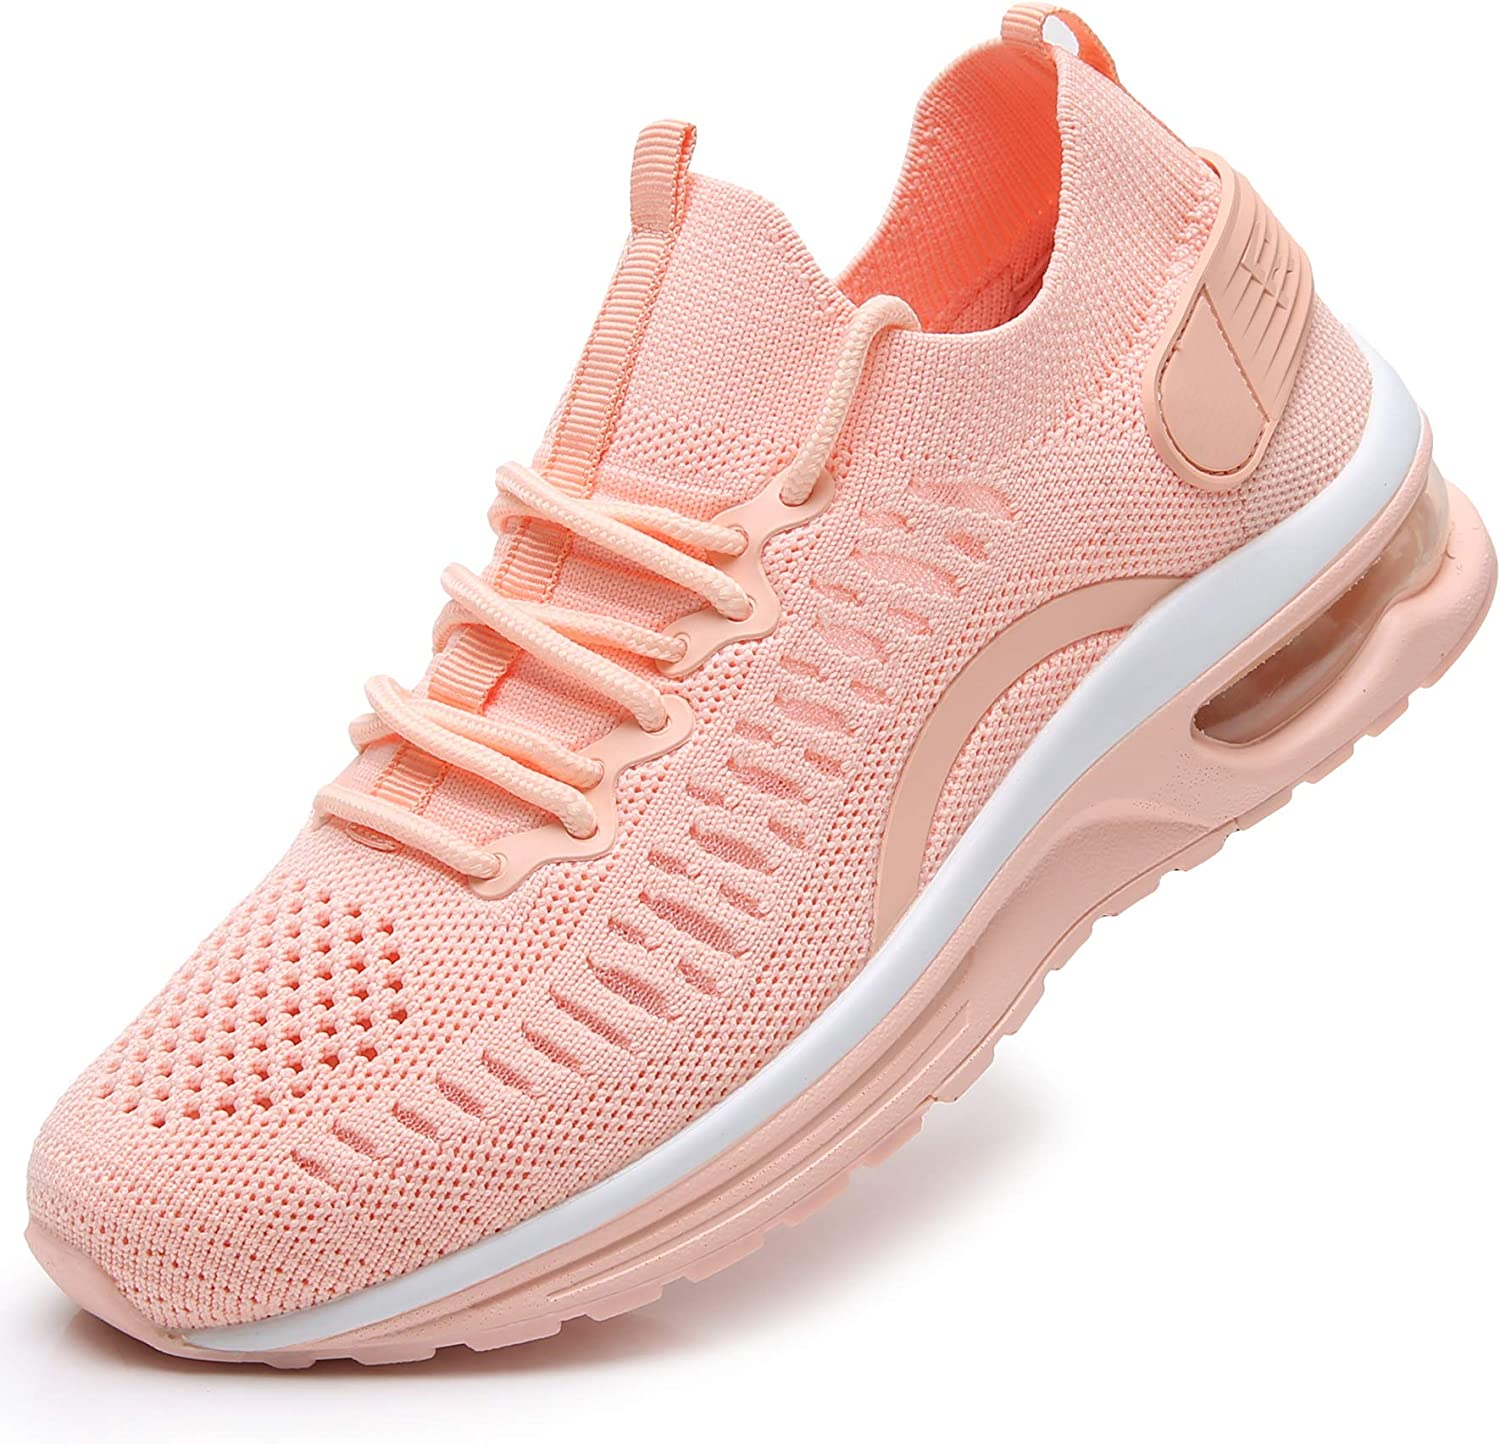 JARLIF Women's Air Running Tennis Shoes Lightweight Cross Trainers Workout Sport Gym Athletic Sneakers